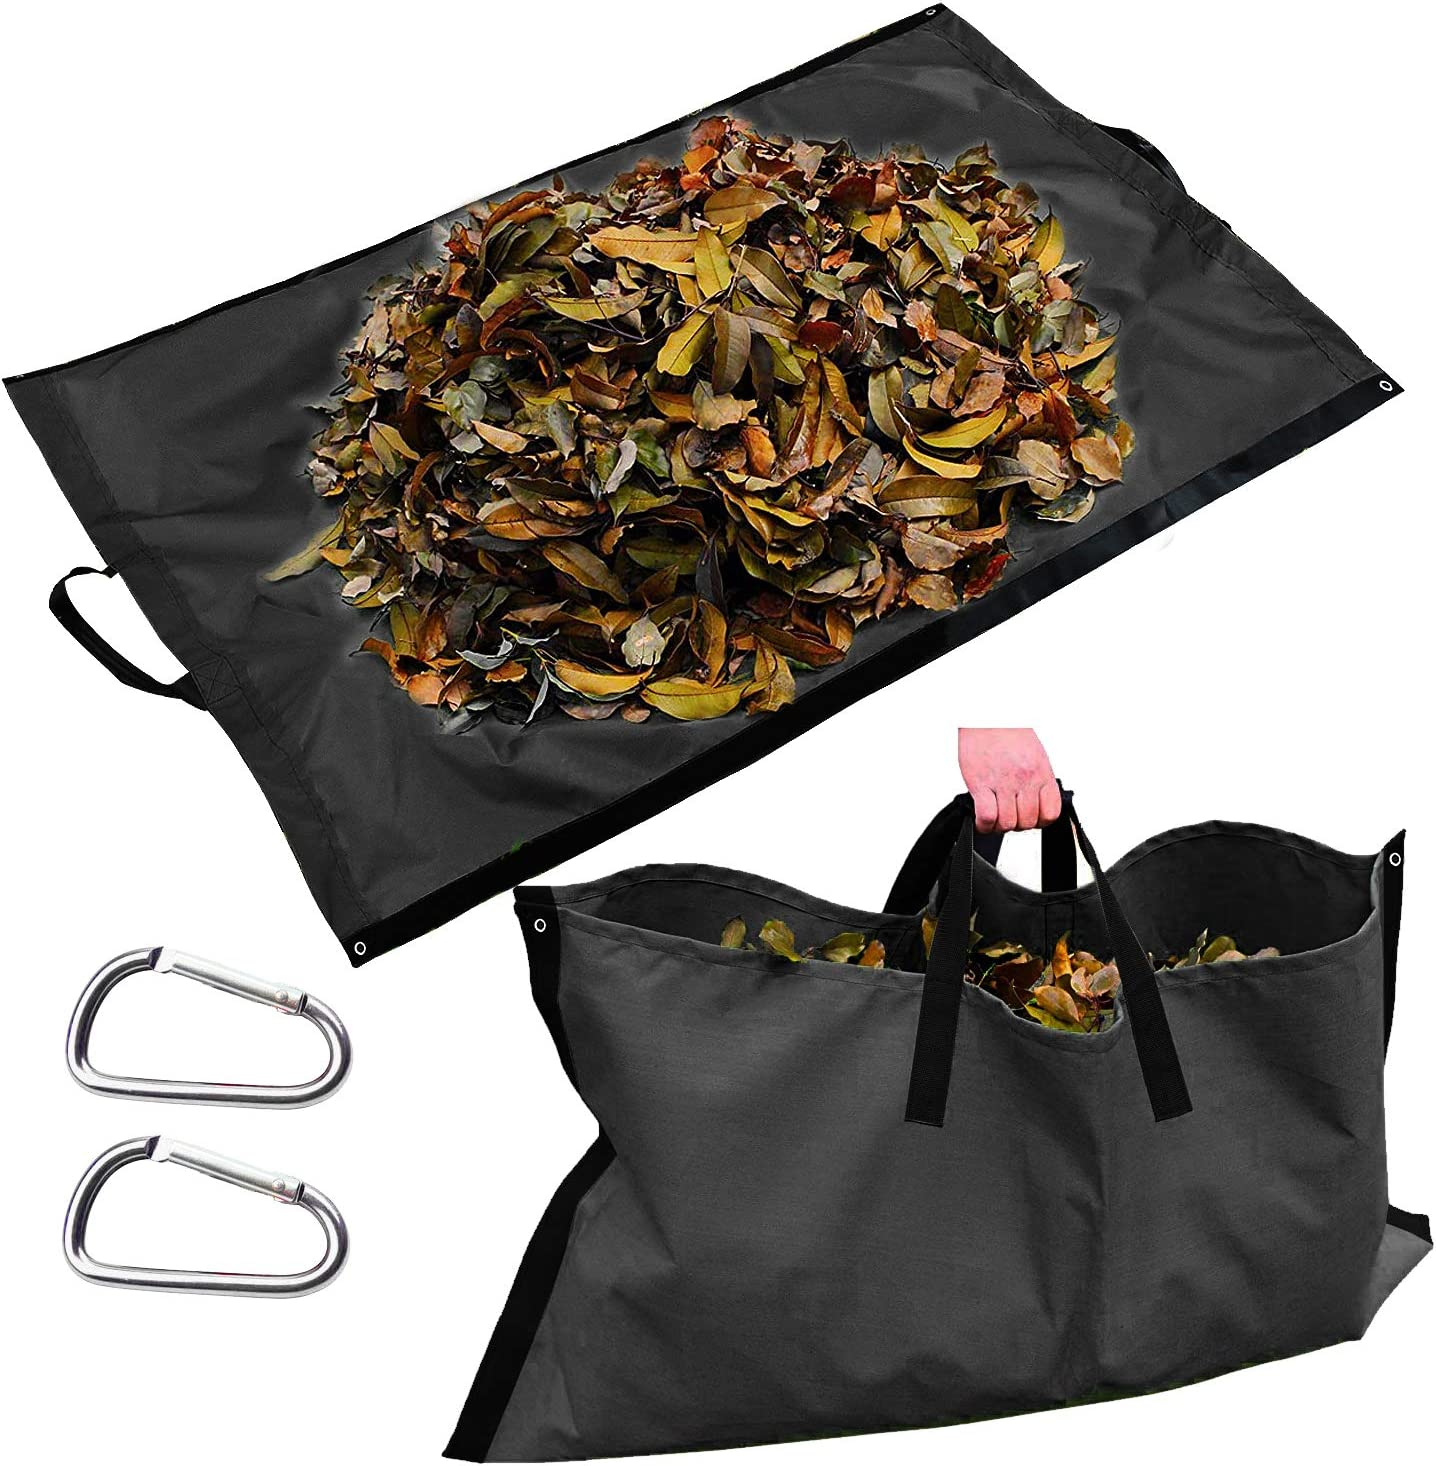 Leaf Bag for Collecting Leaves, Reusable Heavy Duty Gardening Bags, Yard Waste Tarp Garden Lawn Container Gardening Tote Bag-Tarp Trash